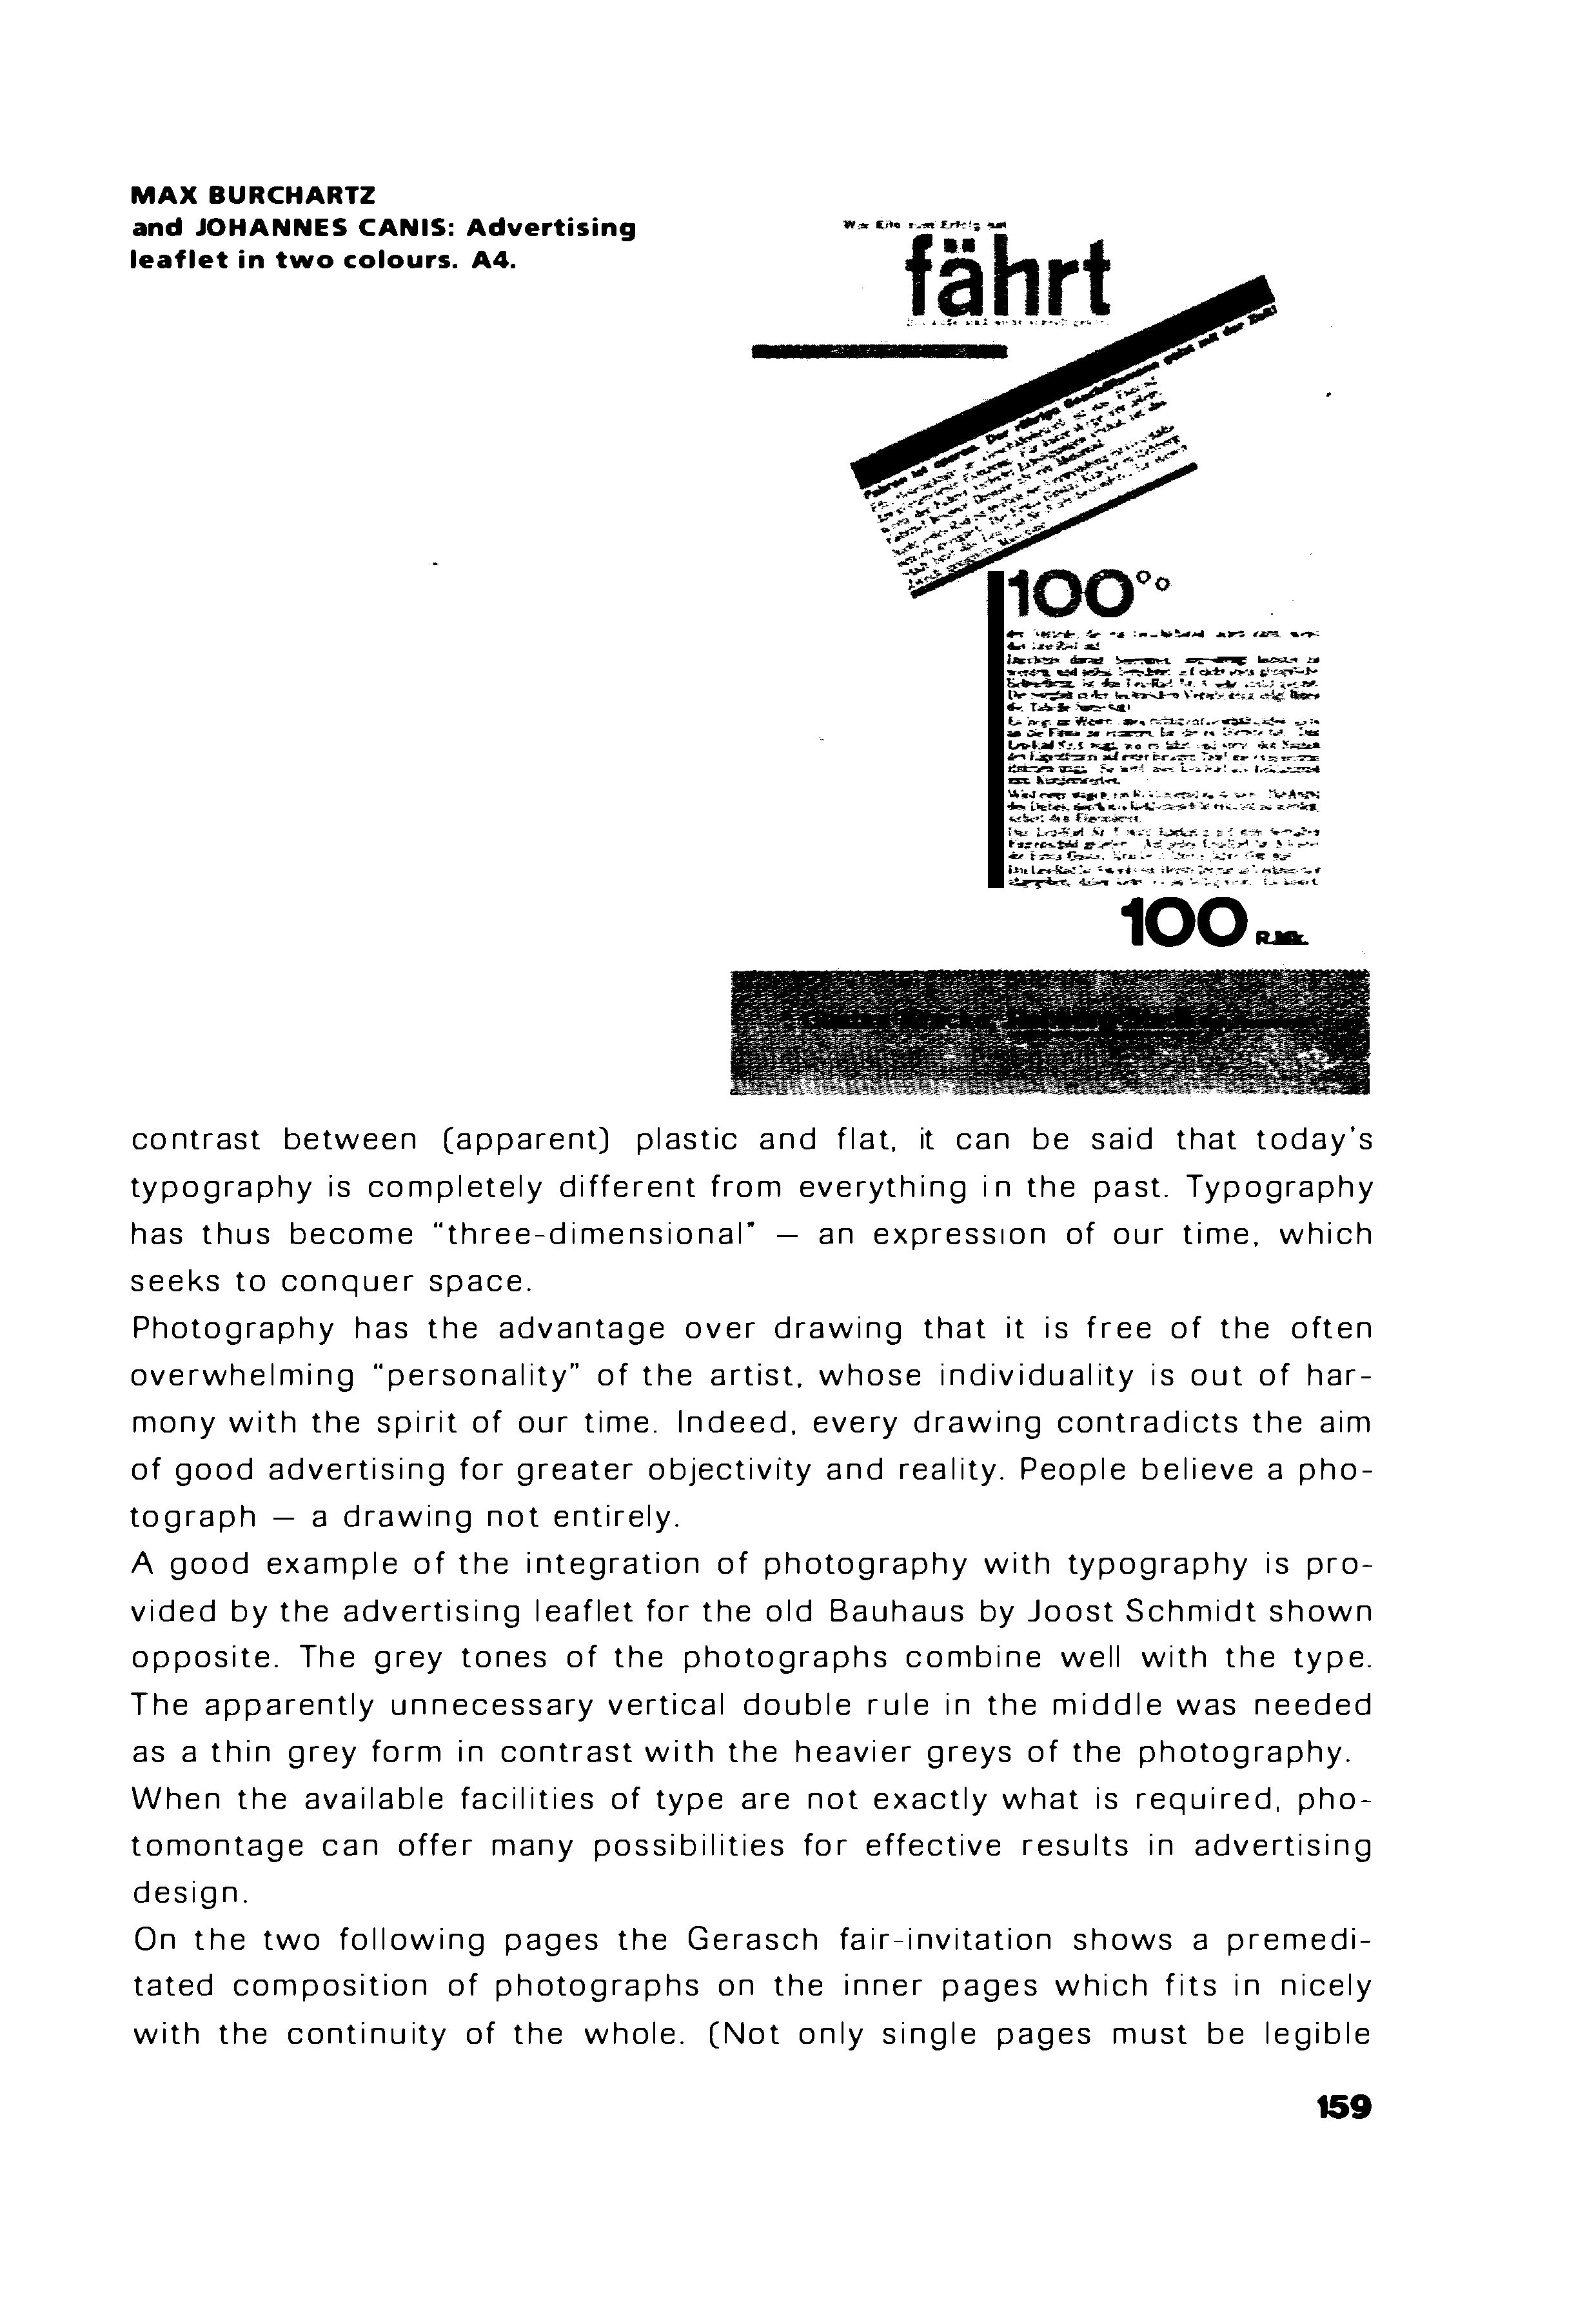 jan-tschichold-the-new-typography-1928_page_203